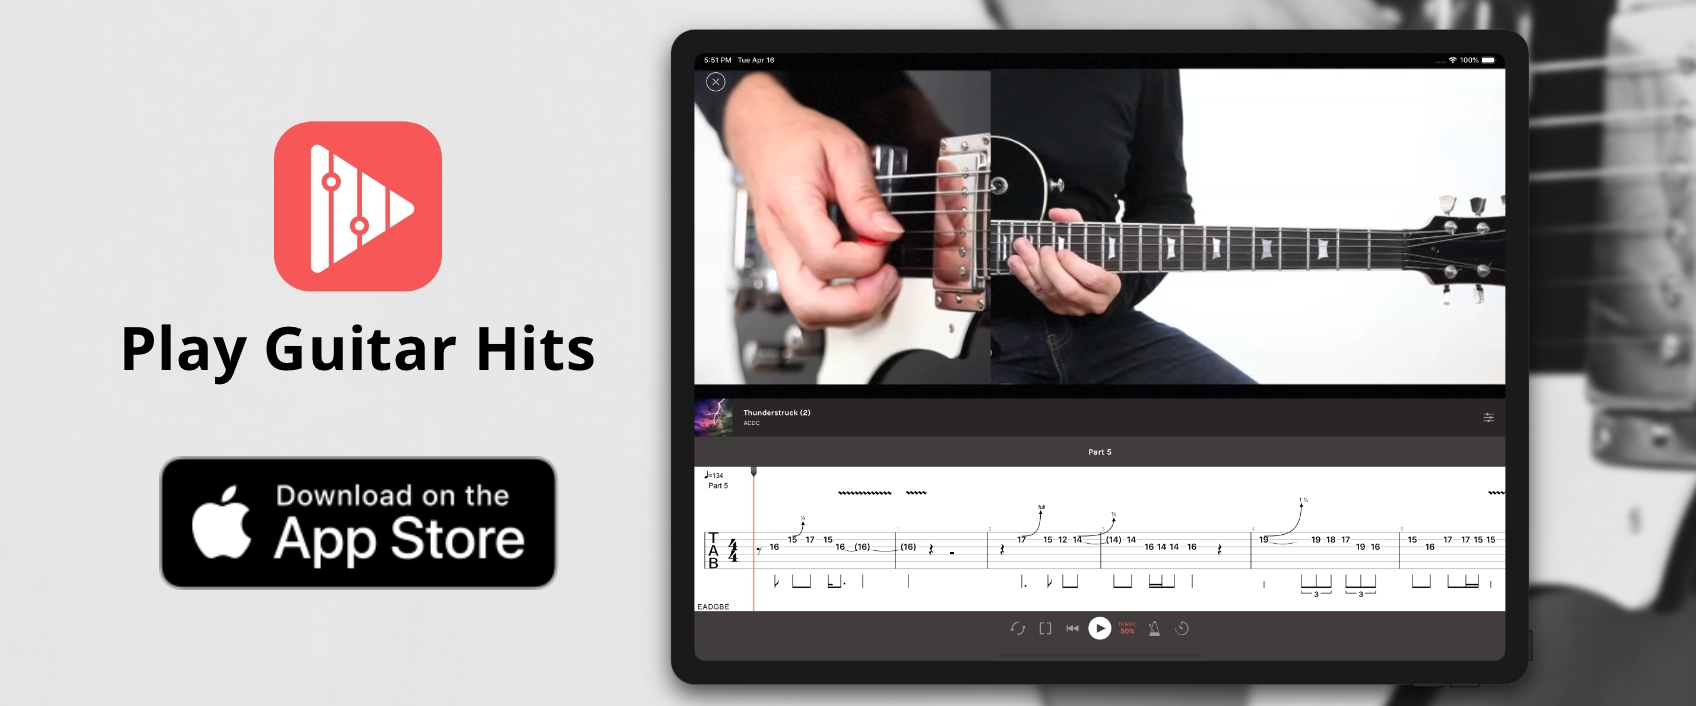 Play Guitar Hits now available on the App Store